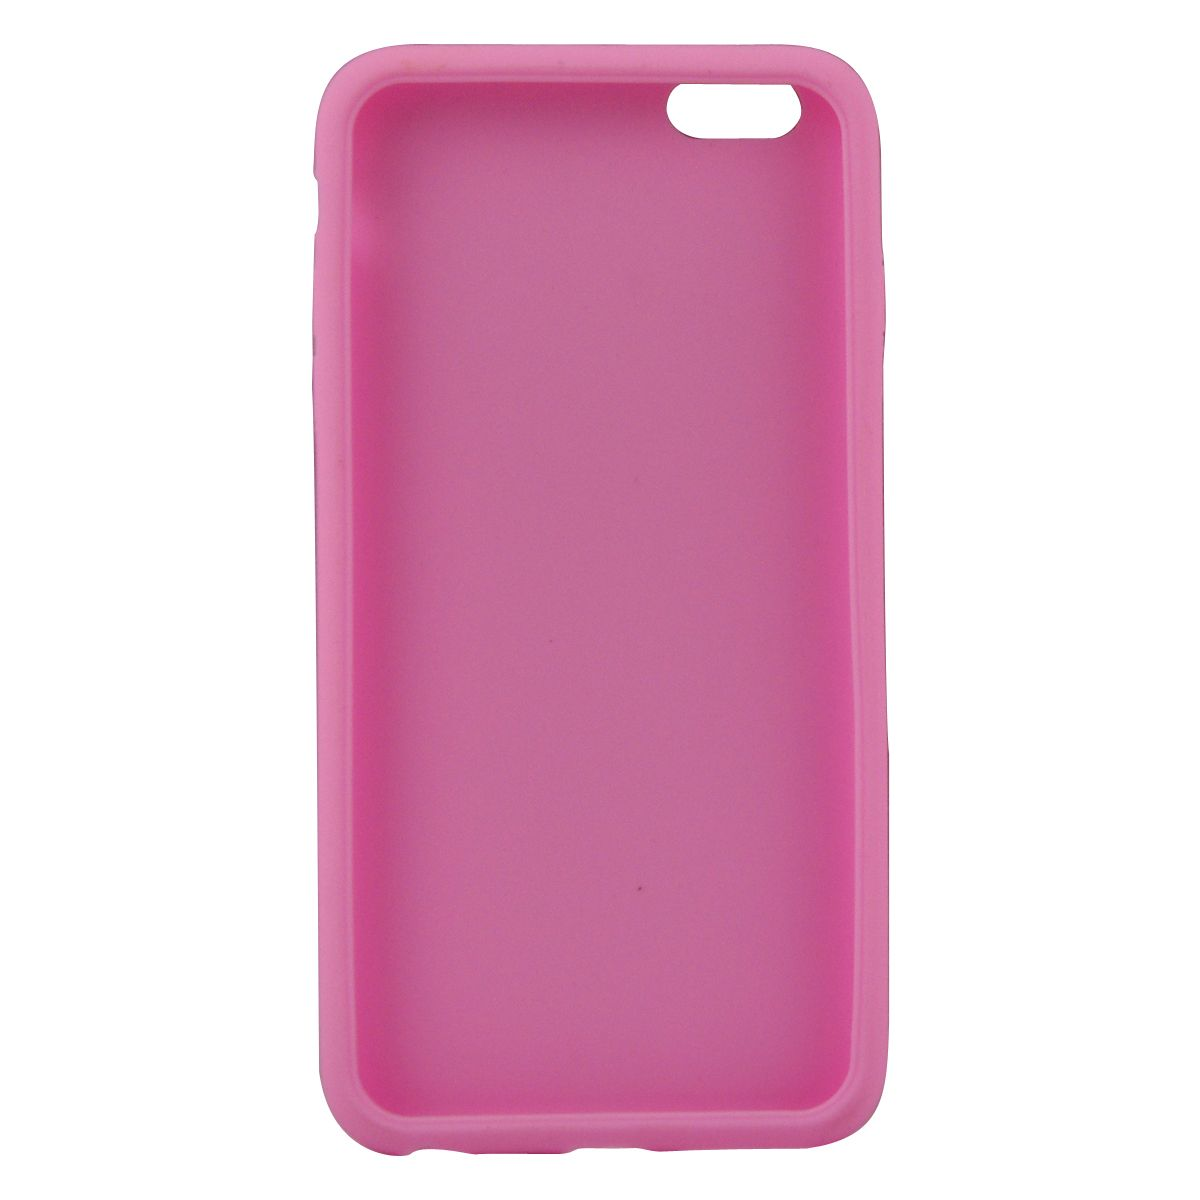 For Apple iPhone 6 Plus Housing Pink Colour | 0.99 dollar for one ...